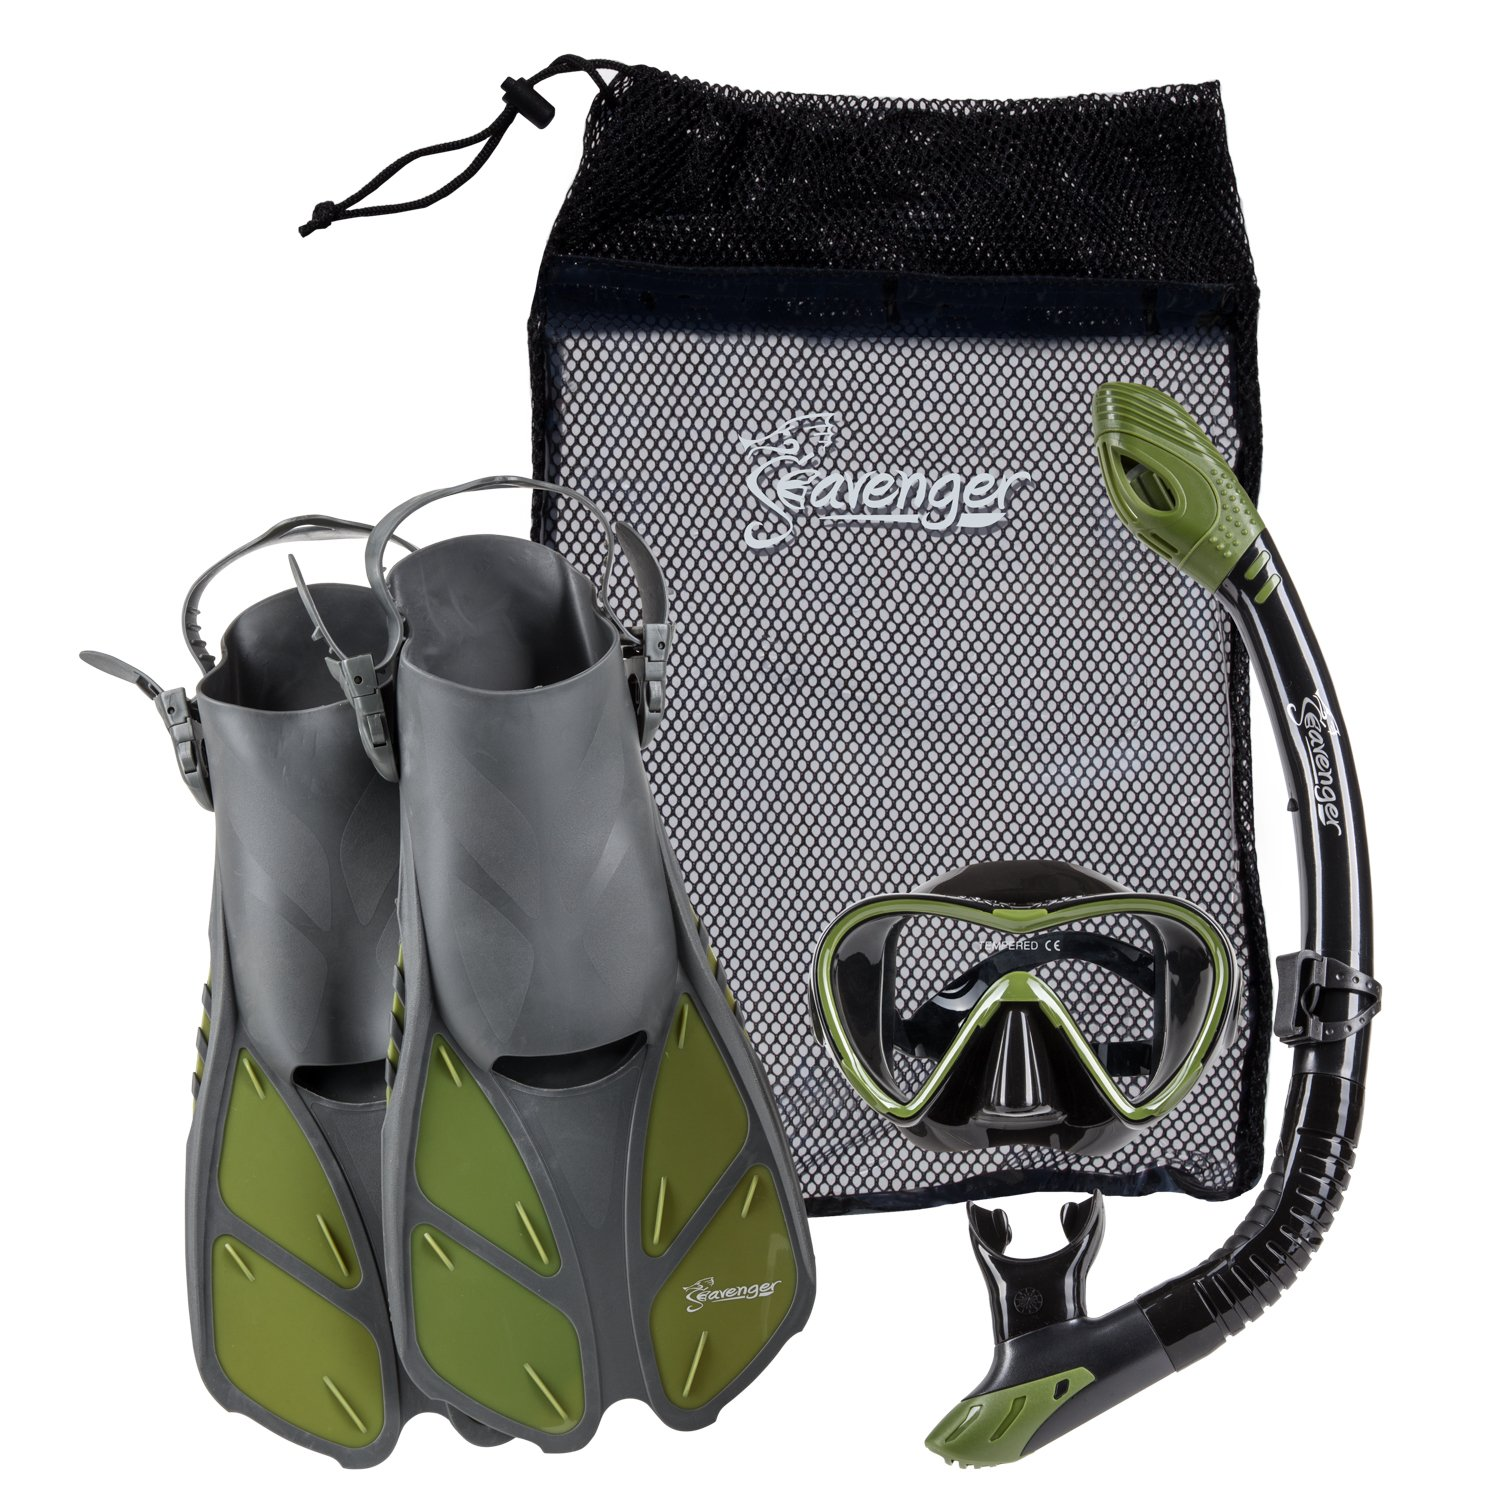 Seavenger Diving Set with Silicone Mask, Trek Fins/Flippers, Dry Top Snorkel and Quick Dry Gear Bag (Gray/Black Silicone/Green, S/M)